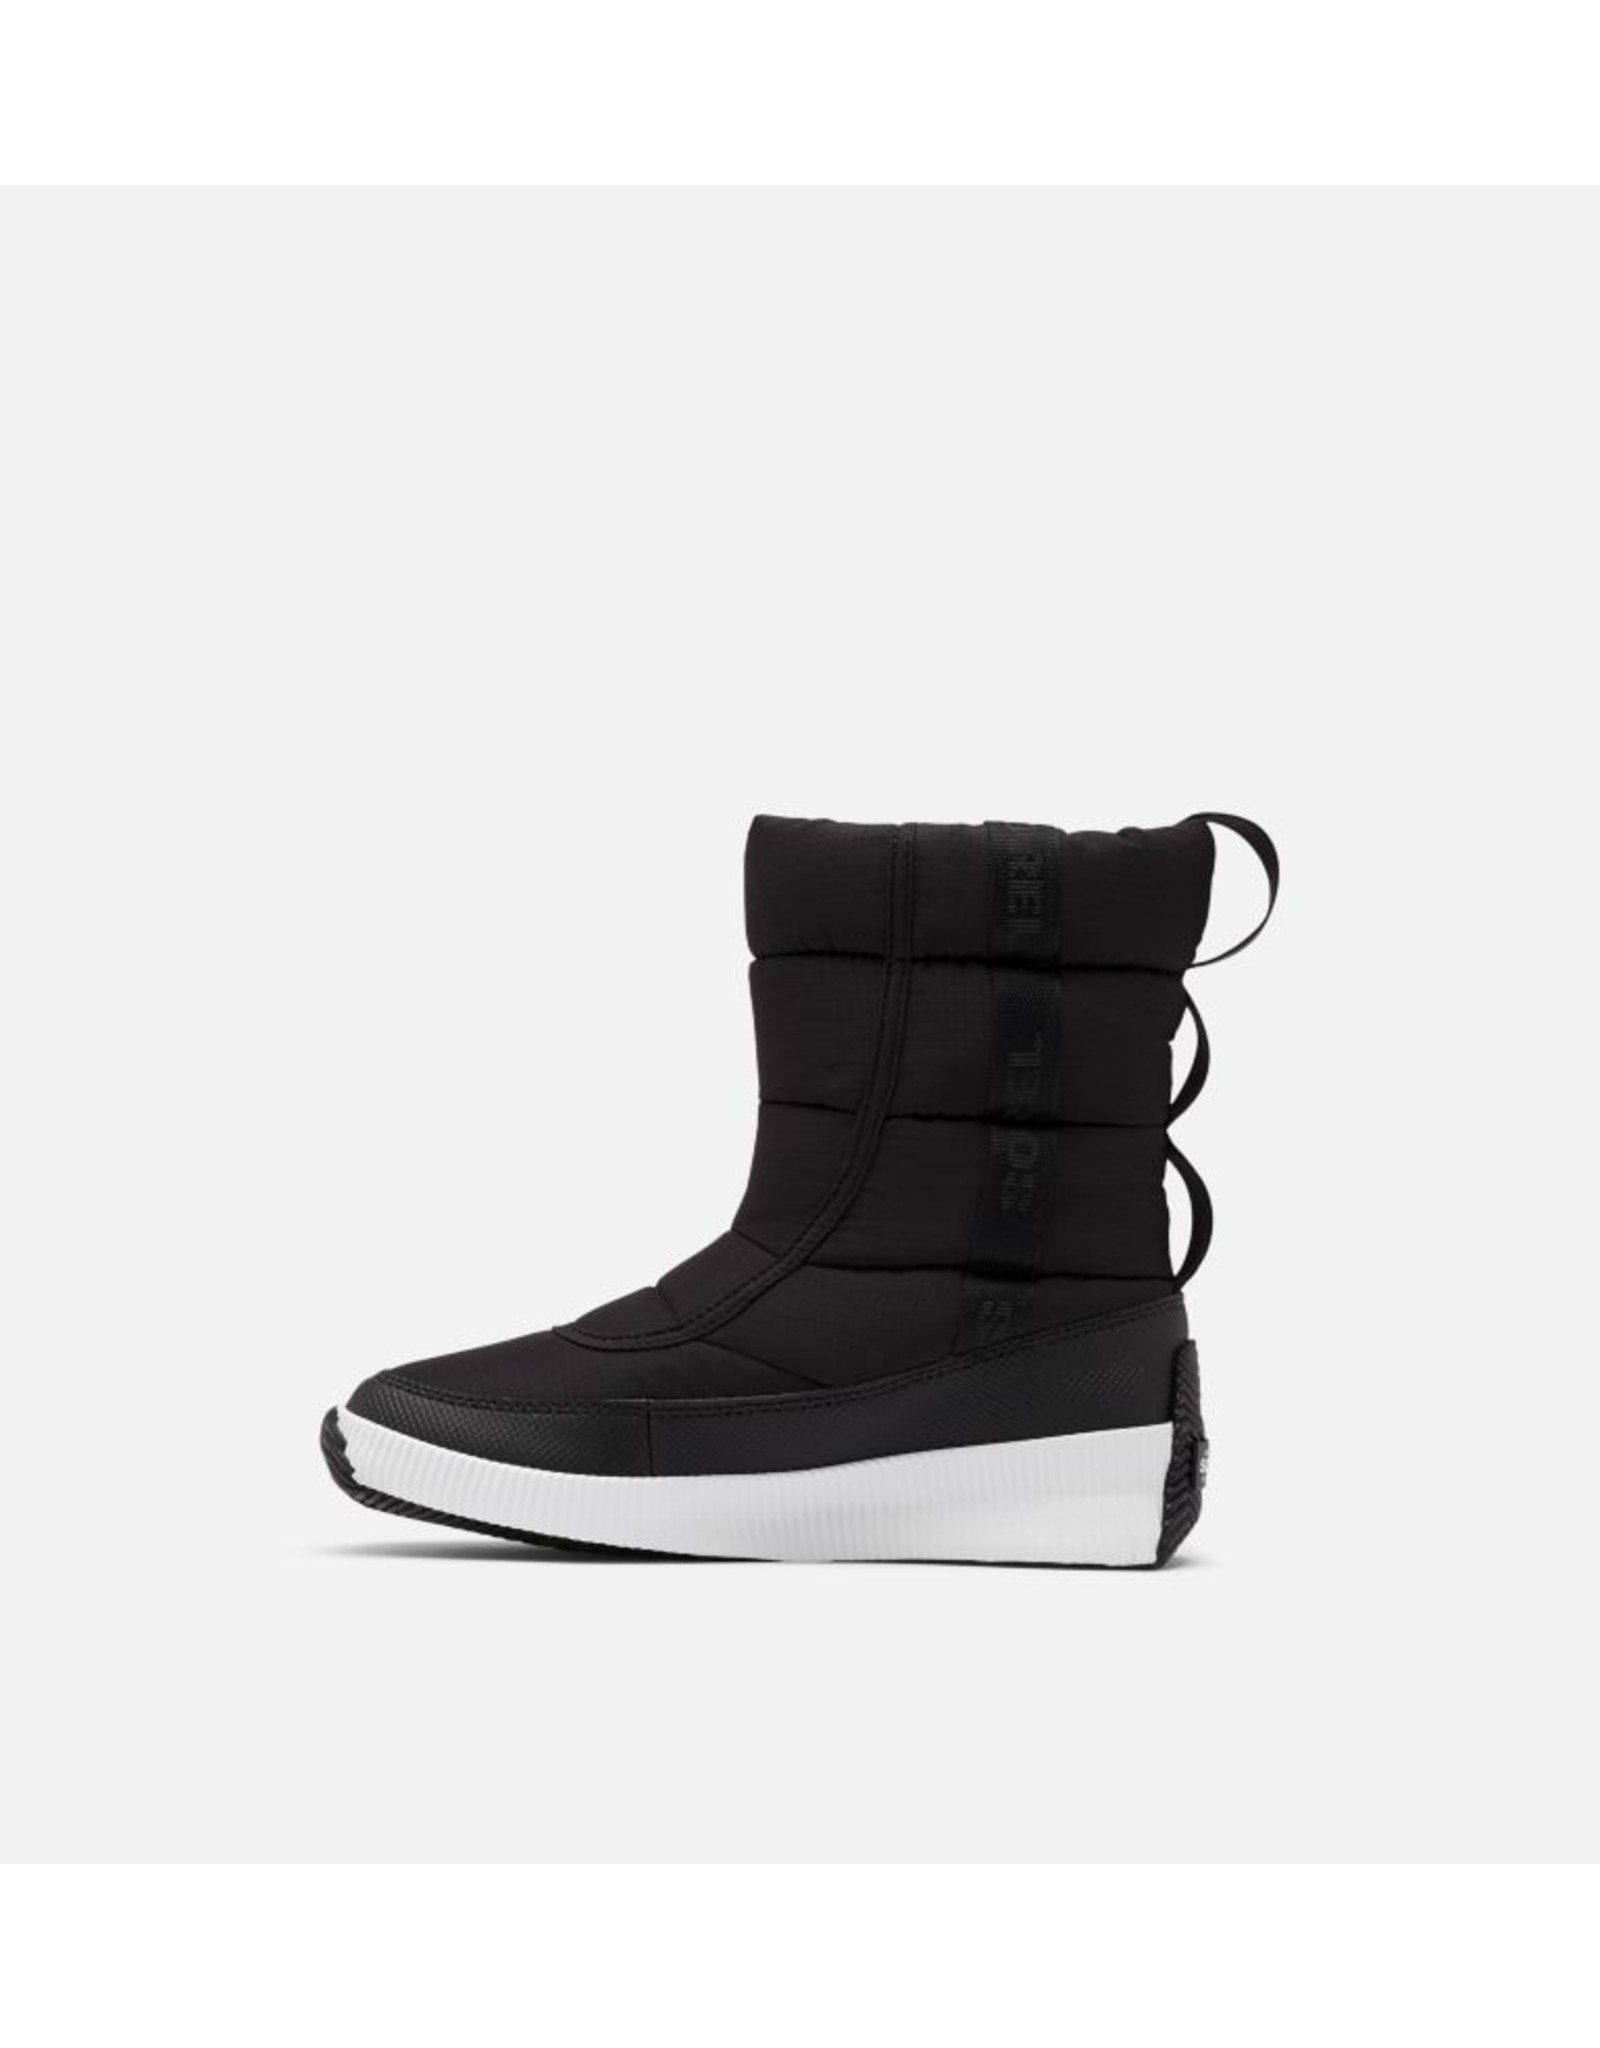 SOREL WOMEN'S OUT N ABOUT PUFFY MID BOOT-BLACK